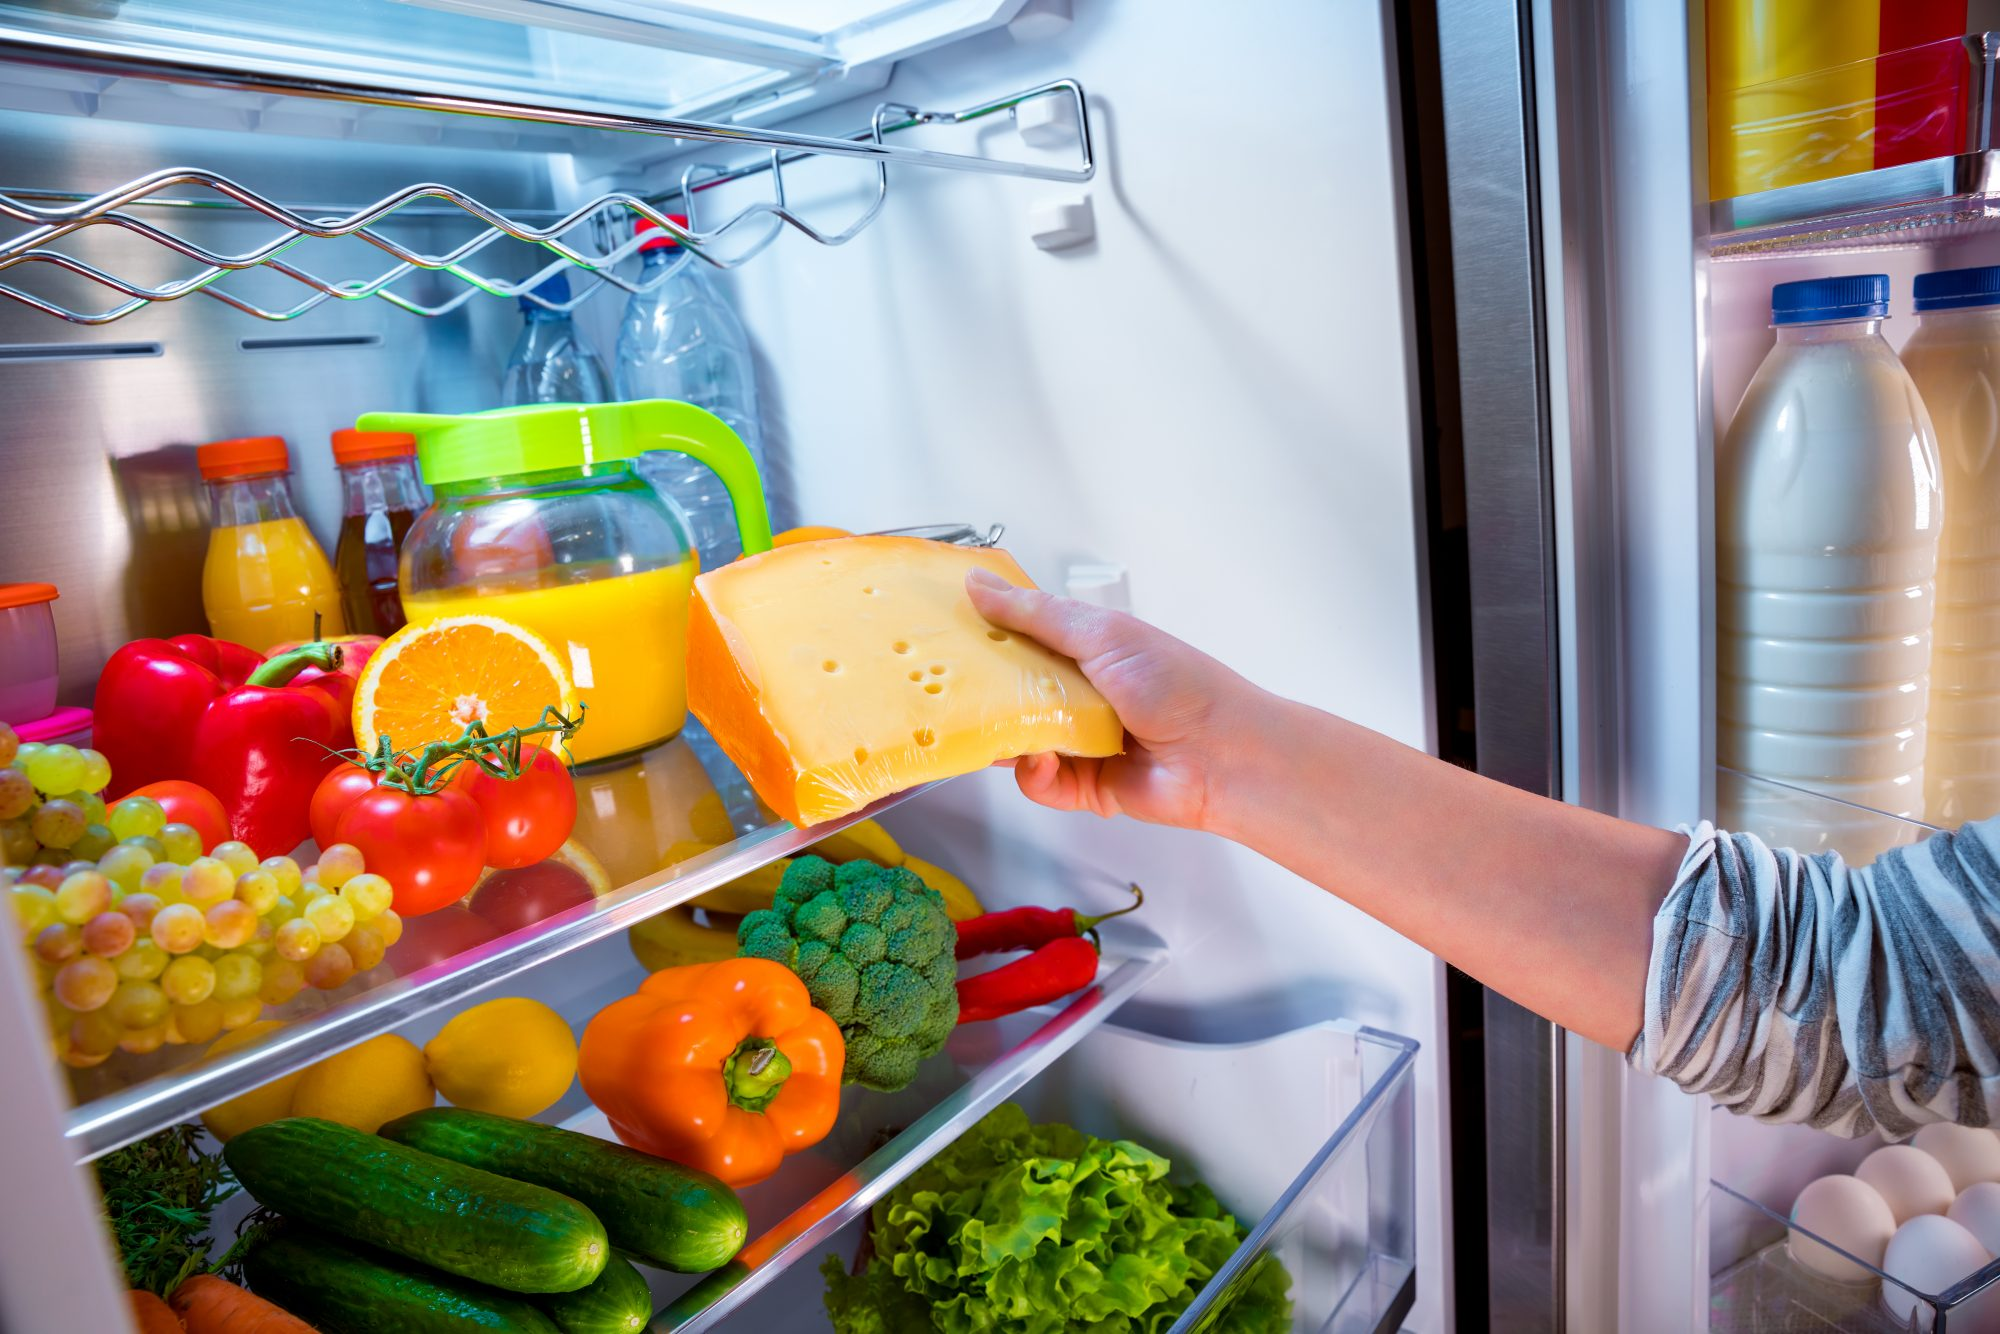 Inside Refrigerator with Produce and Cheese